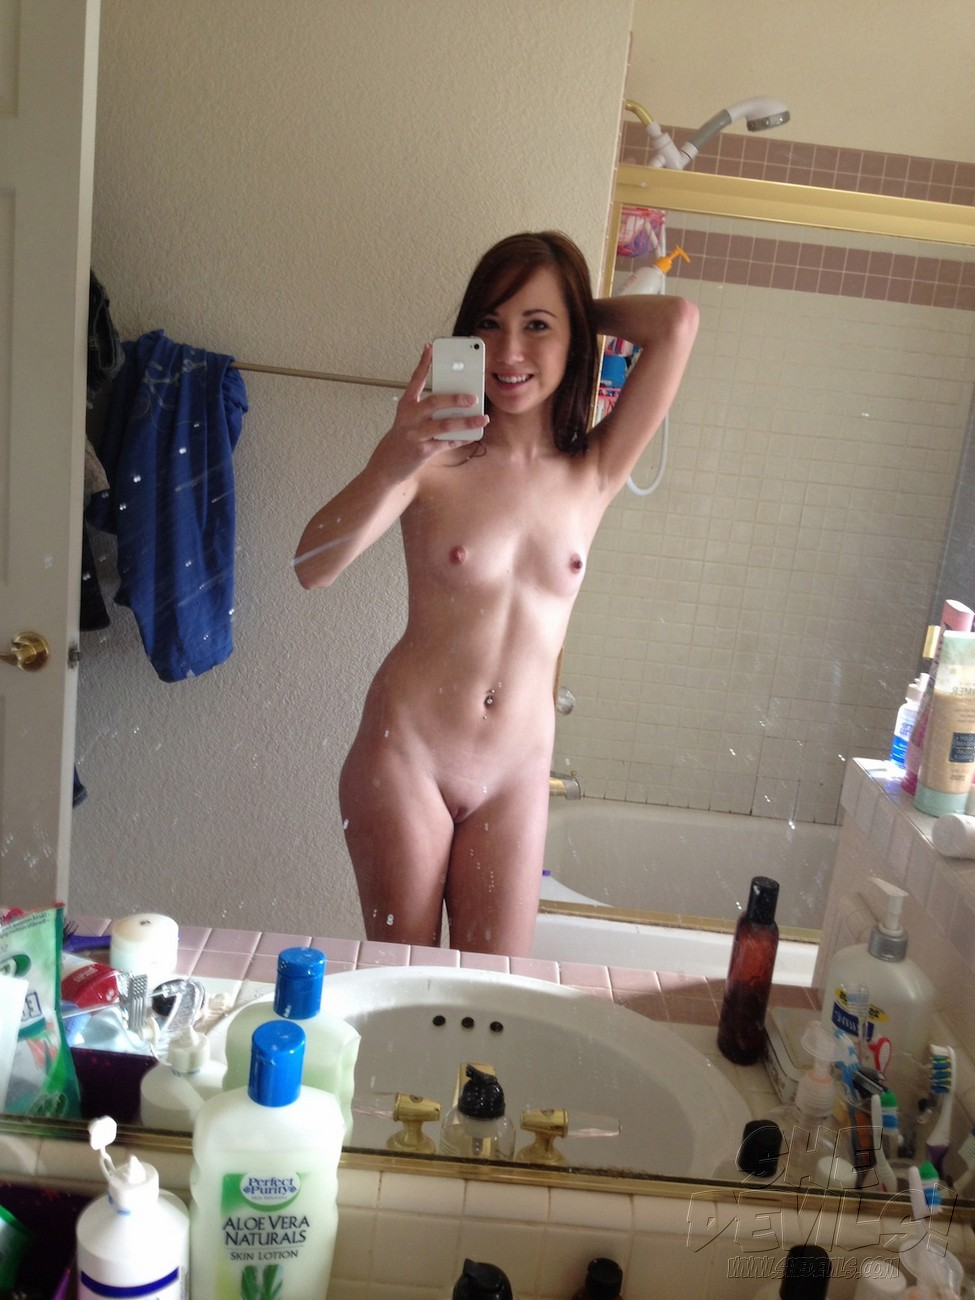 Really. Naked teen gamer girl selfshots excited too